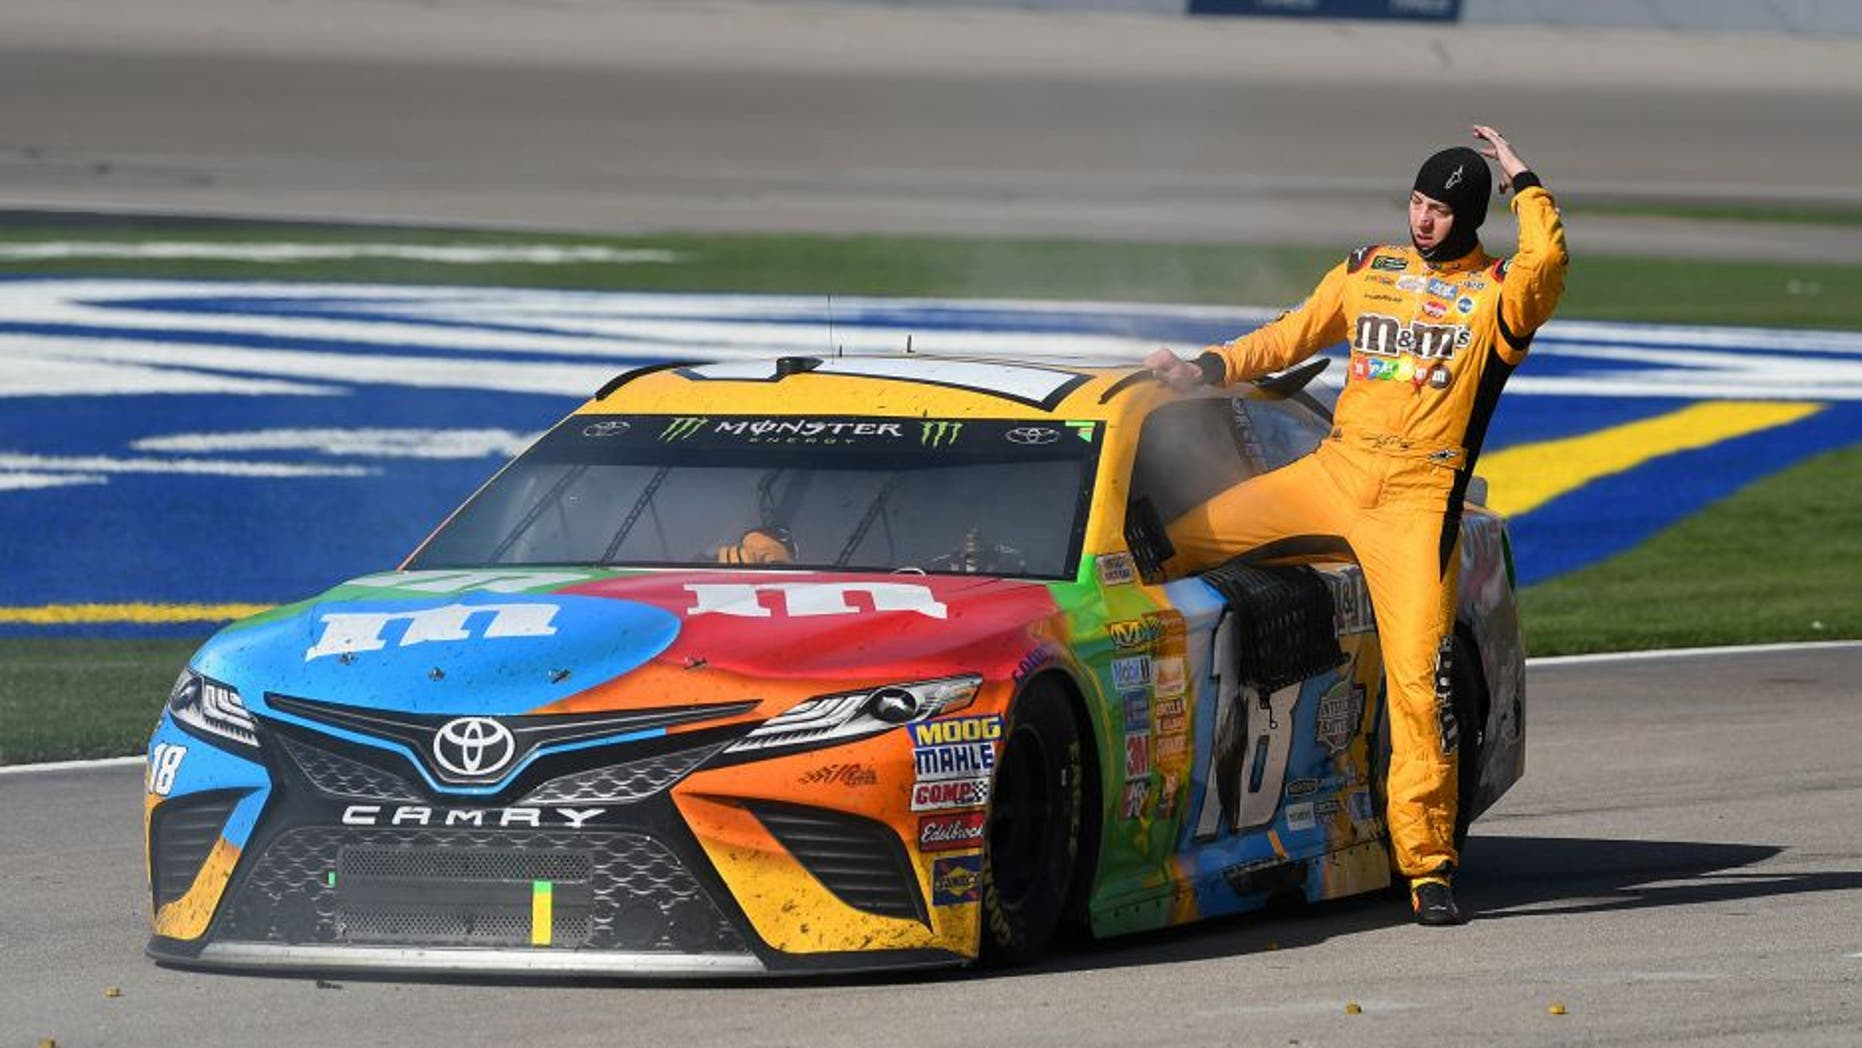 Mar 12, 2017; Las Vegas, NV, USA; Kyle Busch (18) climbs out of the smoking cab of his car at the conclusion of the Kobalt 400 at Las Vegas Motor Speedway. Martin Truex Jr. won the race. Mandatory Credit: Stephen R. Sylvanie-USA TODAY Sports